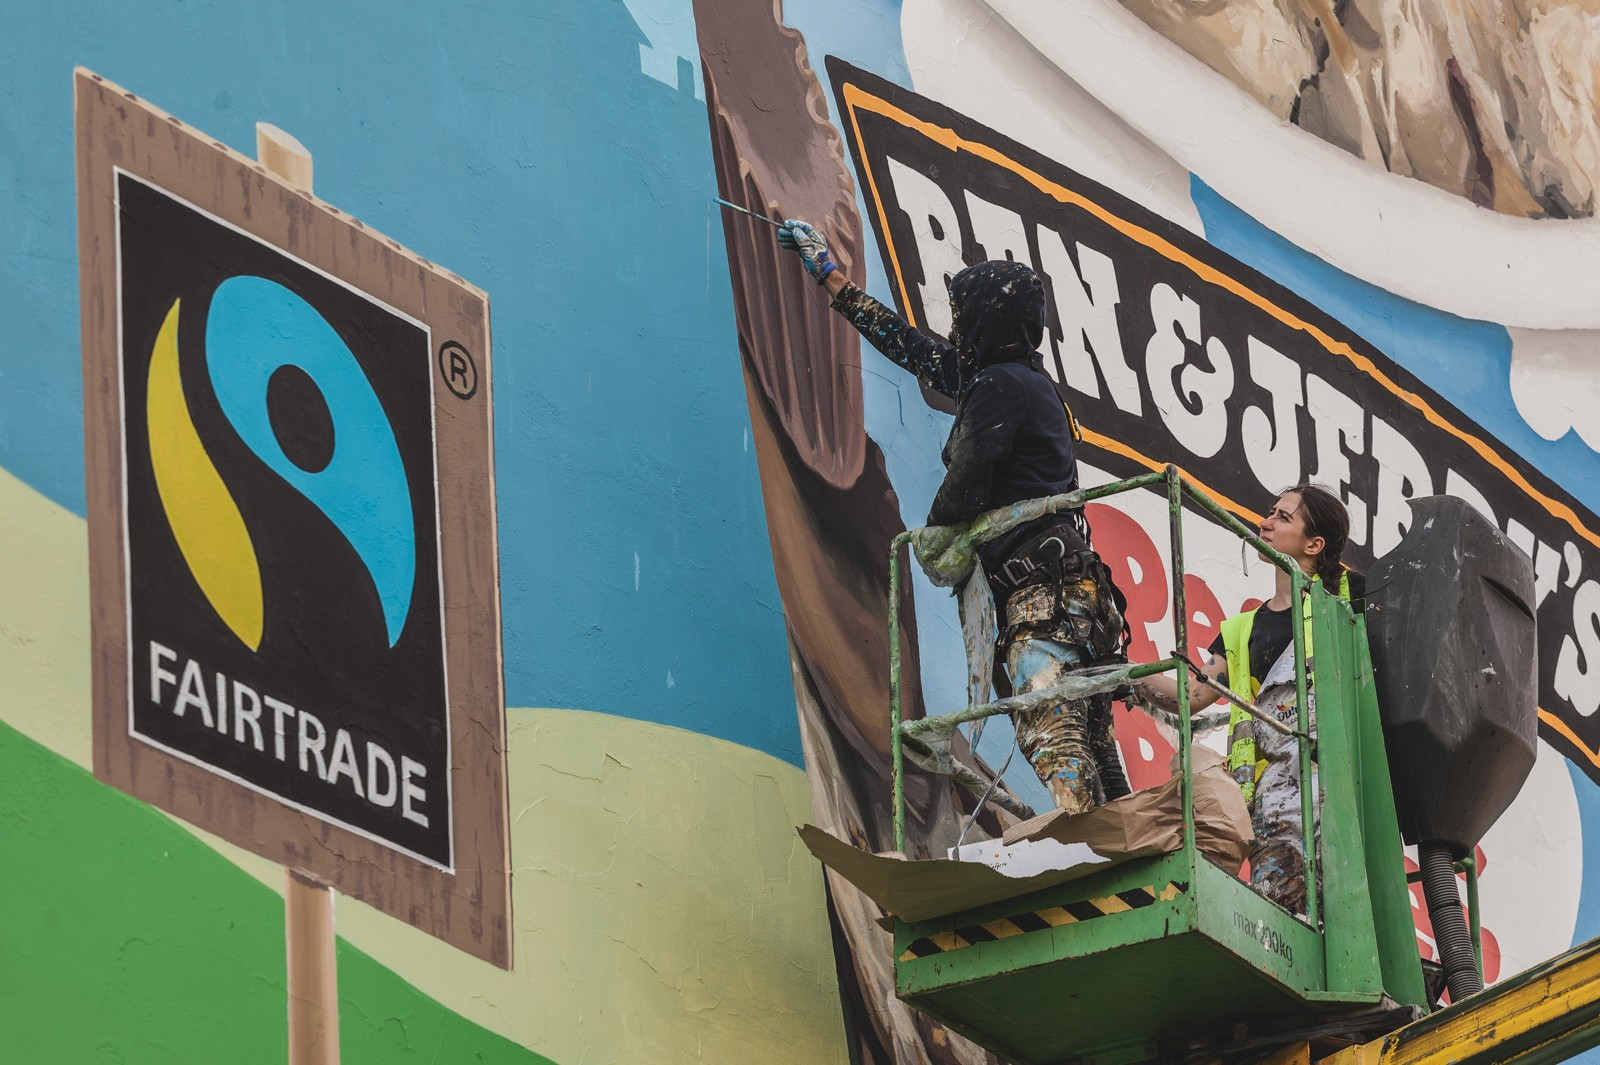 Ben&Jerry's outdoor advertisement in the form of a mural Cracow | Ben & Jerry's | Portfolio